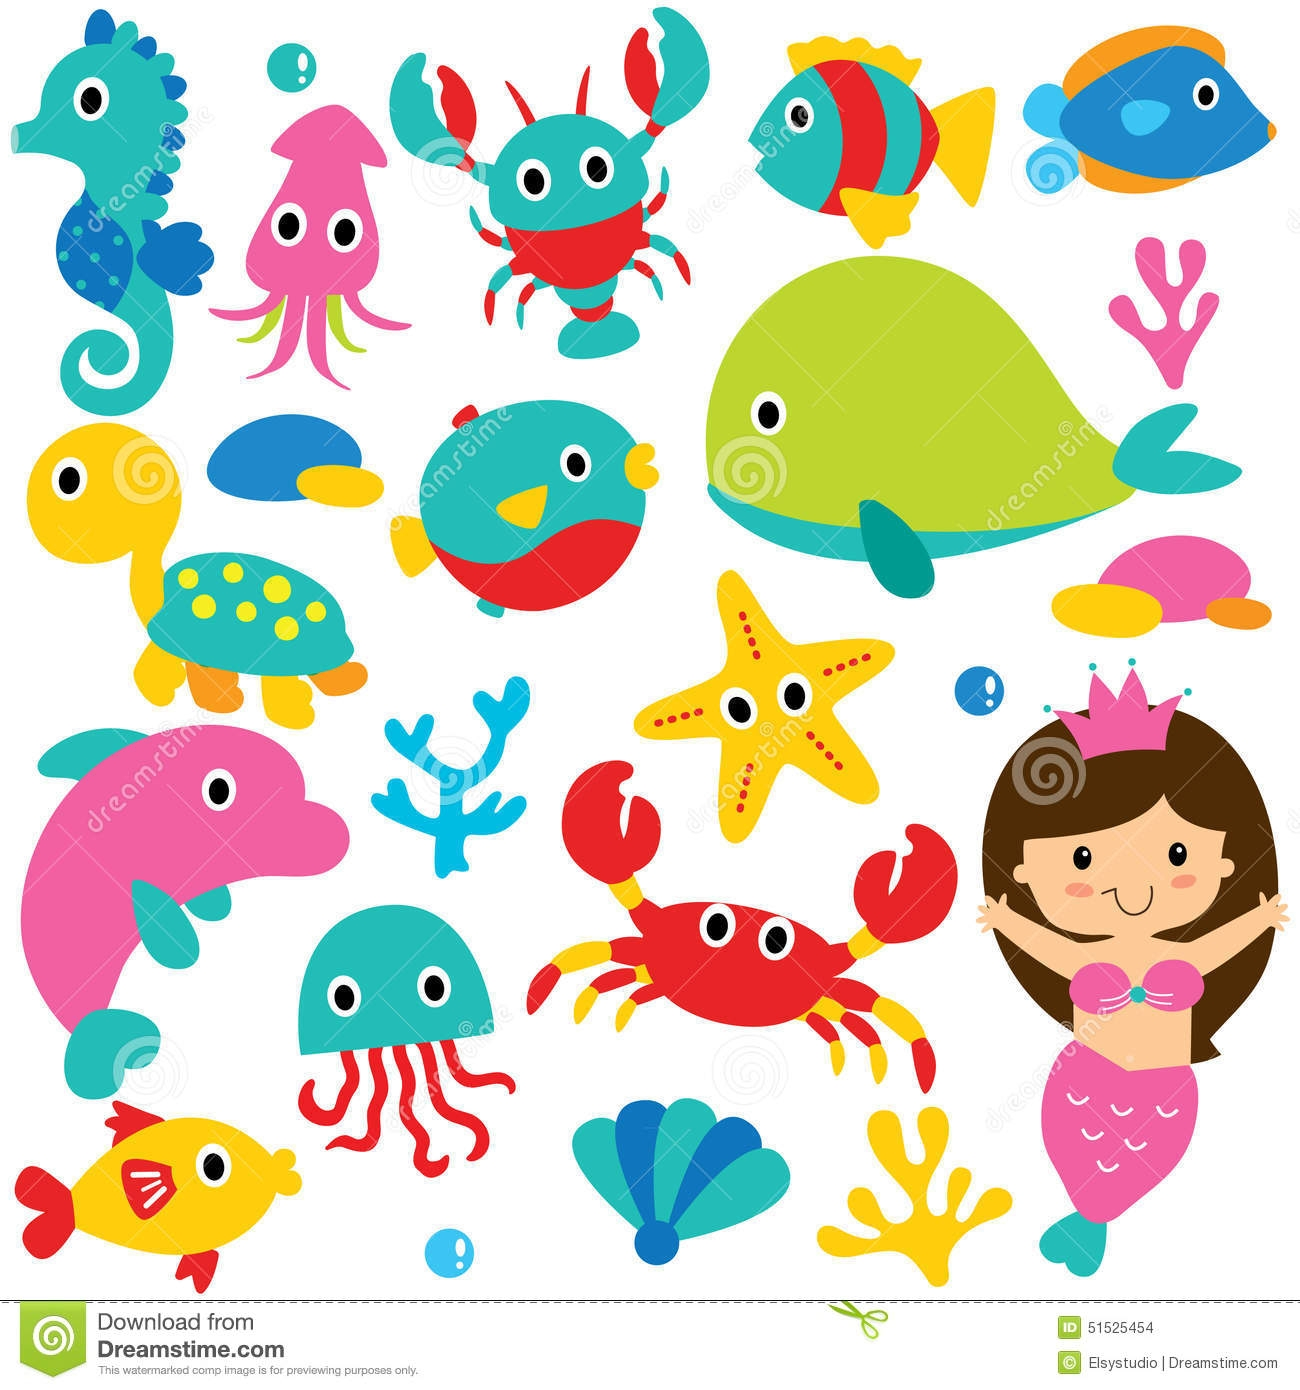 Sea animals clipart free download.